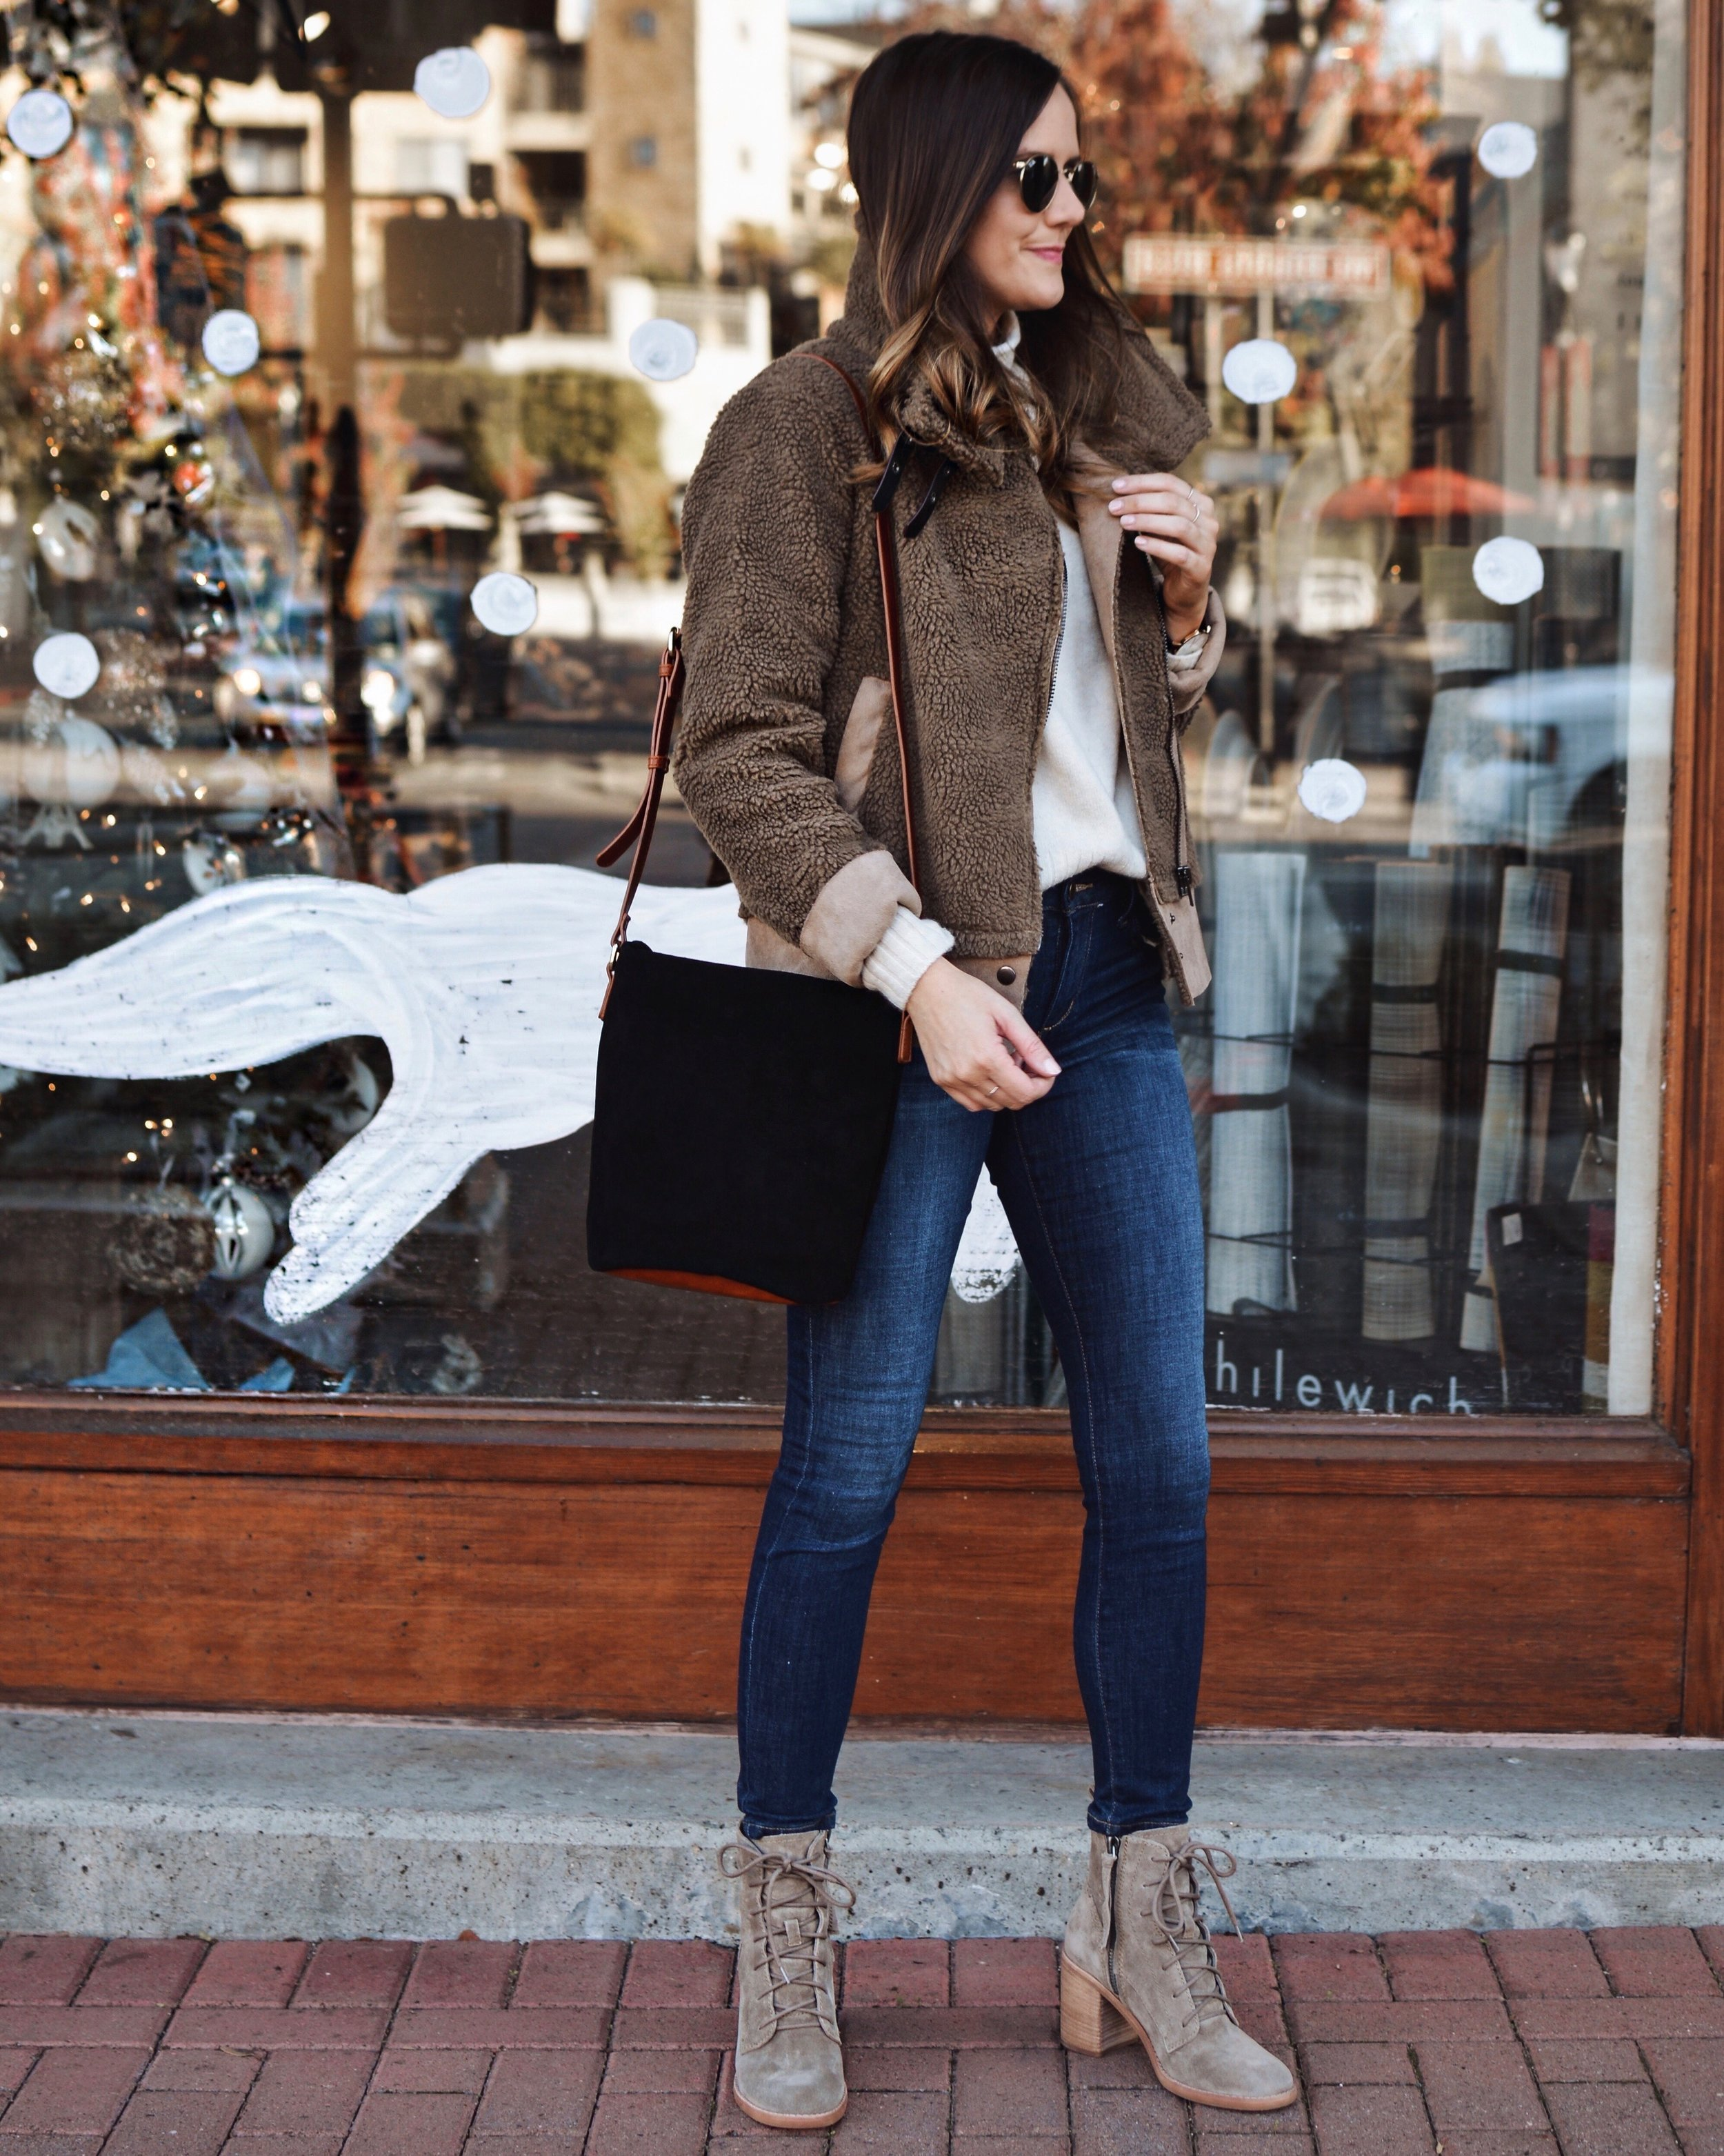 Shop the Look Below.  Nordstrom Jacket  in stock  HERE  |  Madewell Sweater  |  Joe's Jeans  |  Dolce Vita Boots  |  Sole Society Bag  |  Ray-Ban Sunglasses